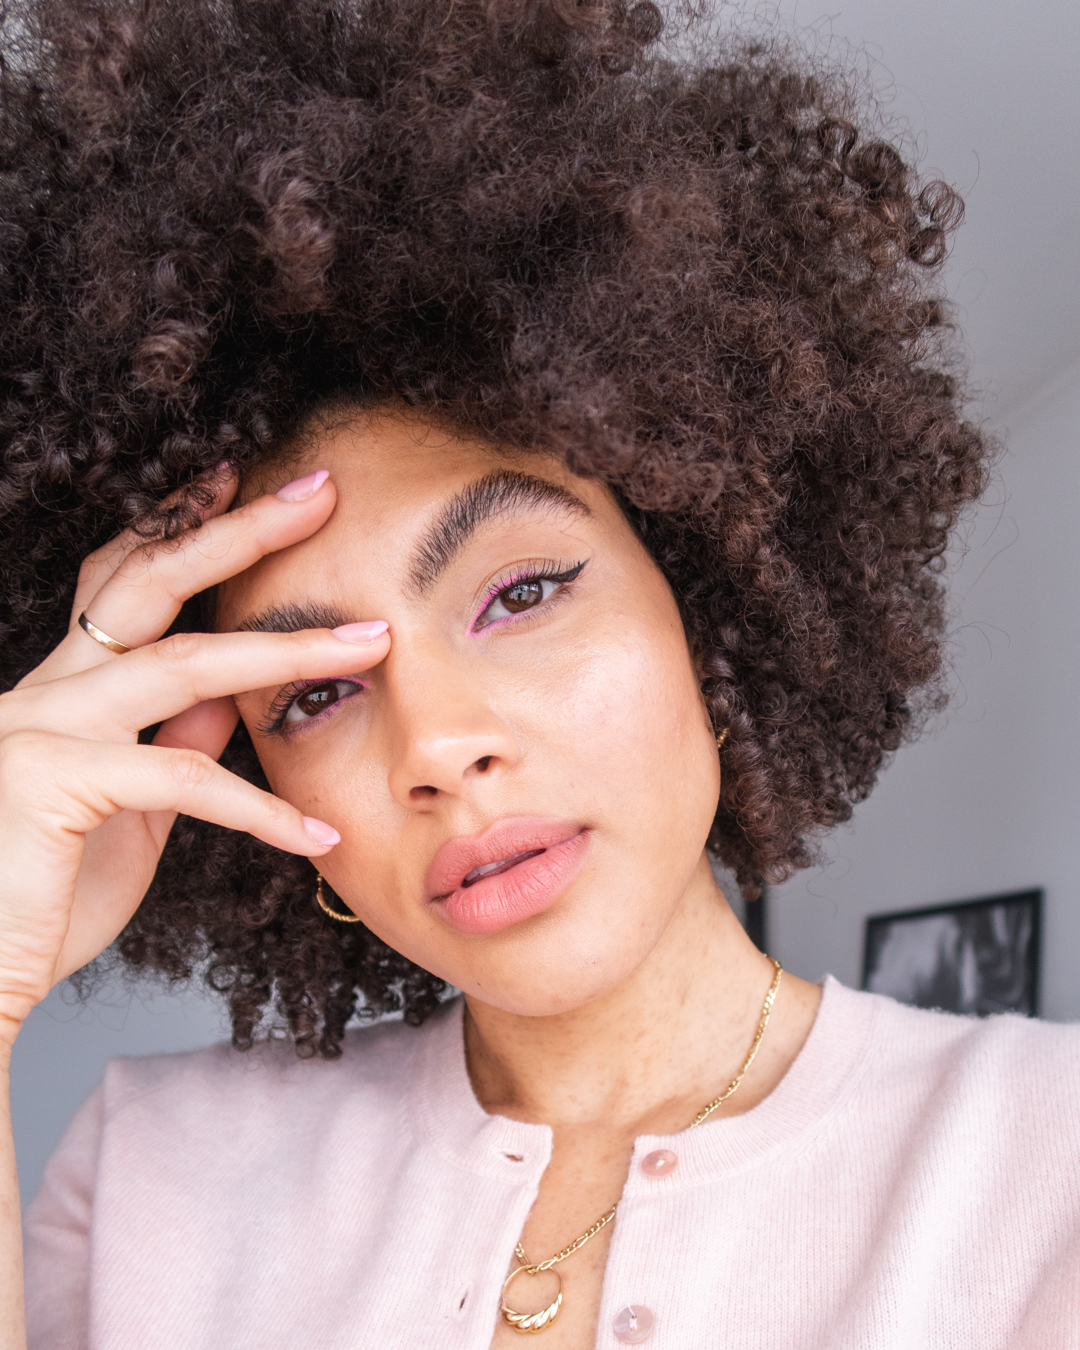 Beauty blogger subtle pink eye makeup winged look afro hair Samio